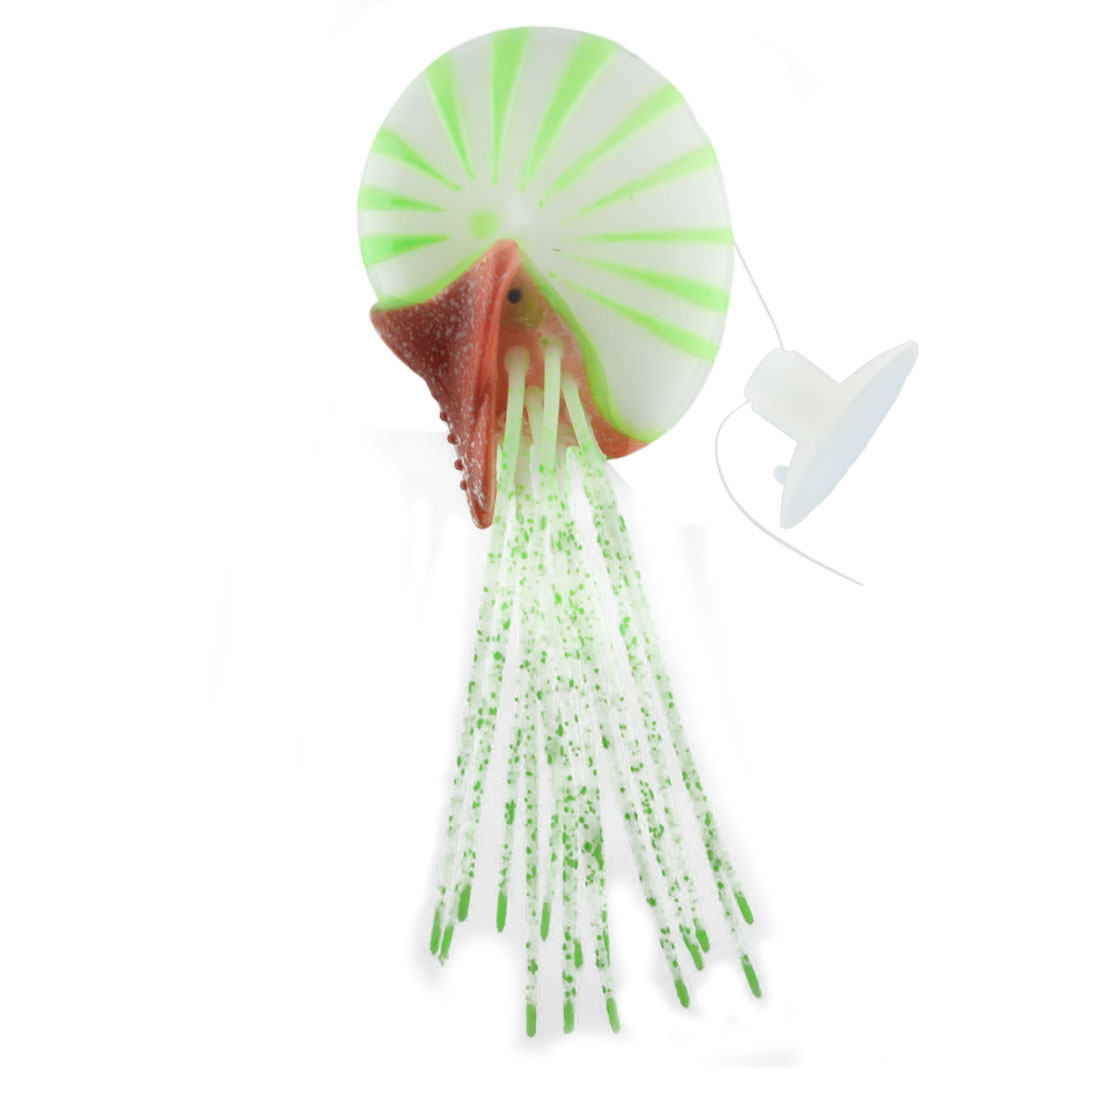 Aquarium Plastic Manmade Artificial Floating Conch Design Decoration Ornament Green